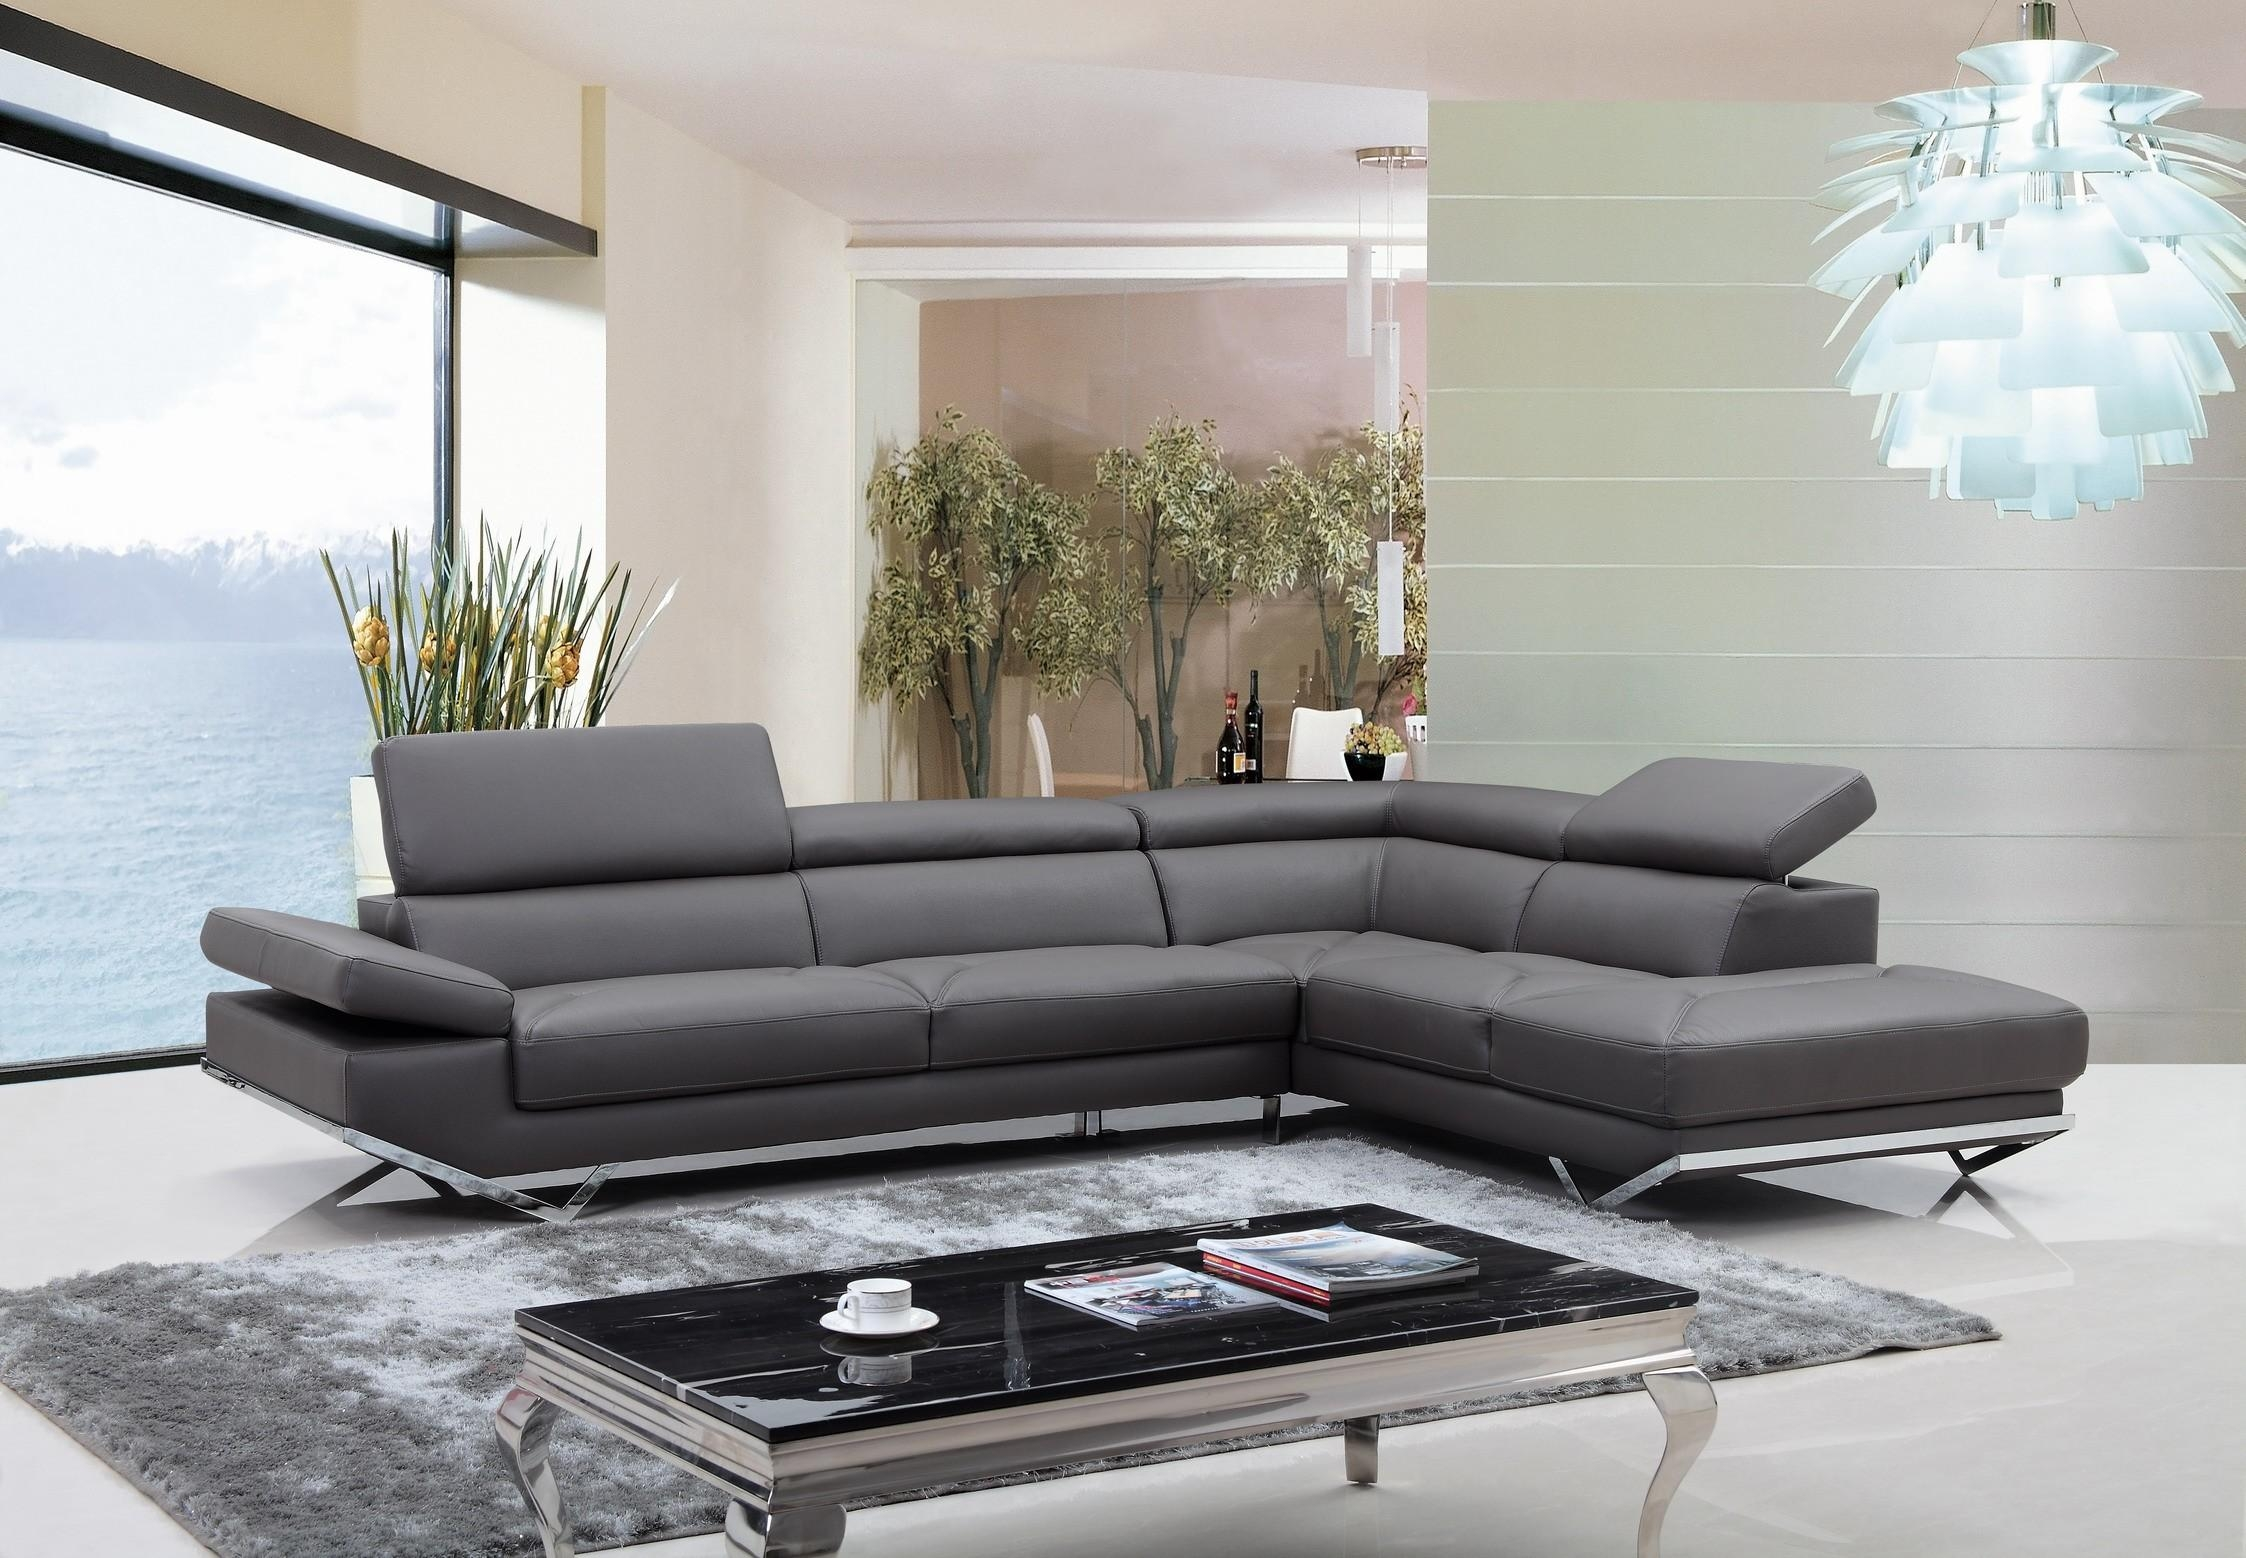 Casa Quebec Modern Dark Grey Eco Leather Sectional Sofa Intended For Gray Leather Sectional Sofas (Image 6 of 21)